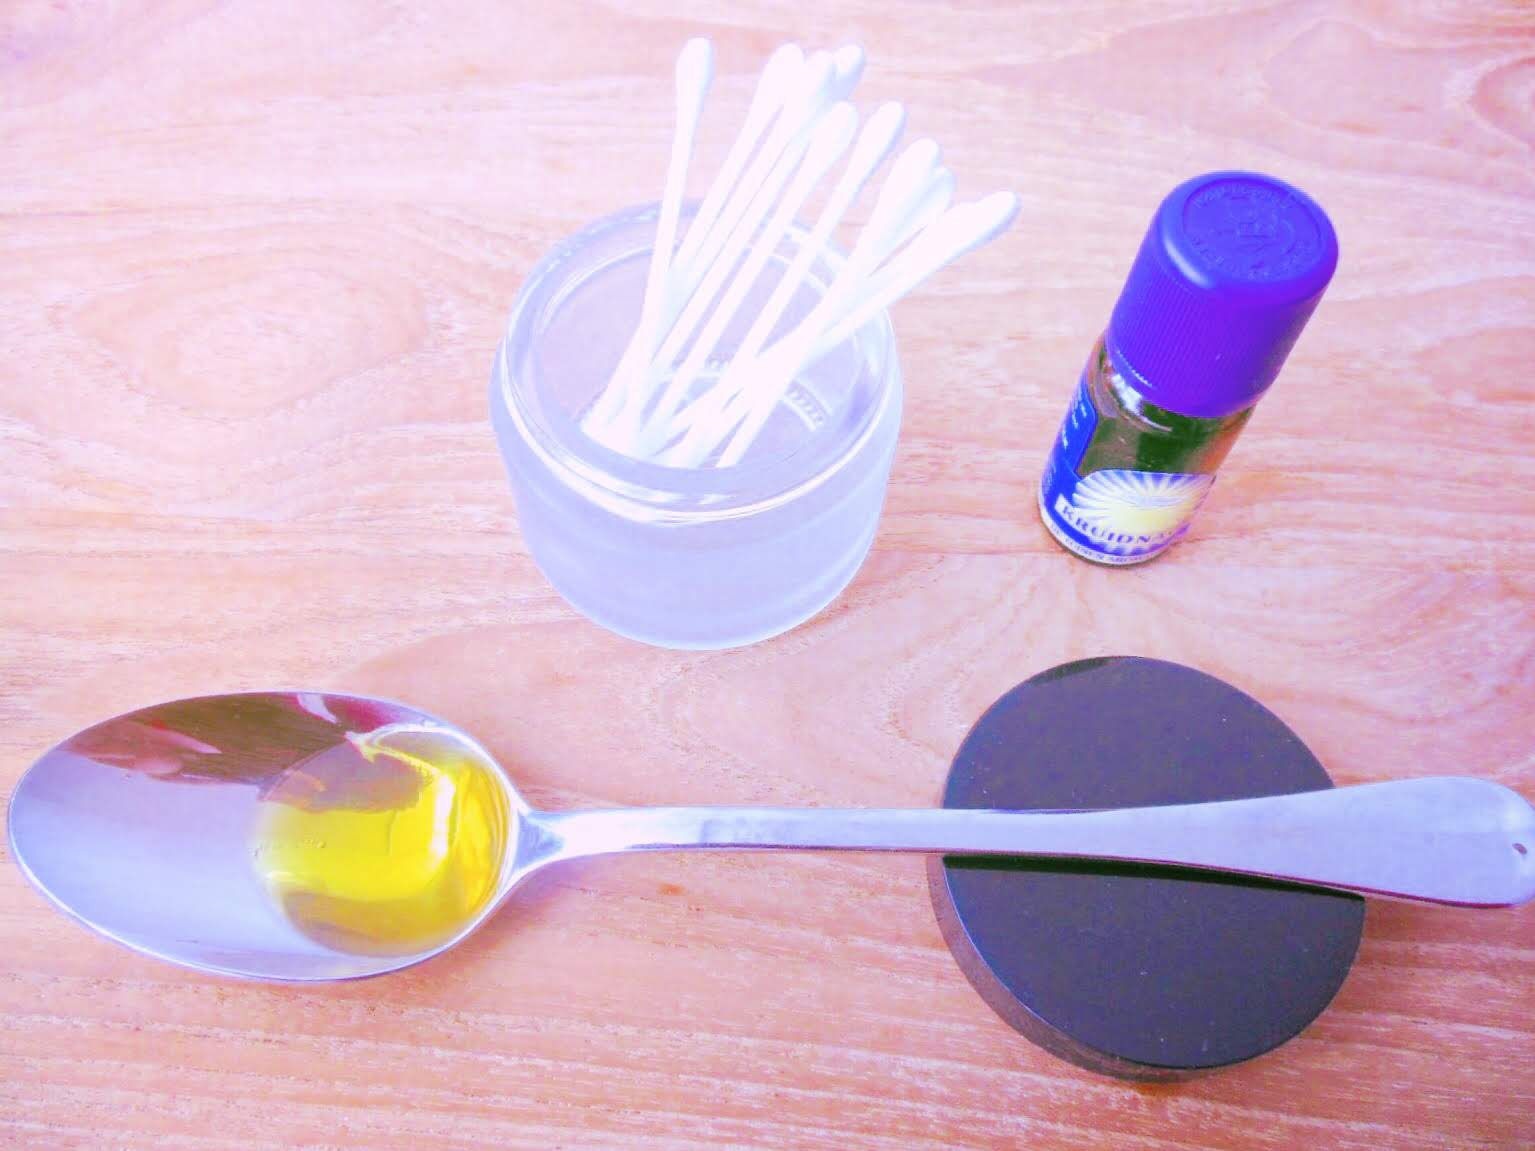 How to dilute clove oil with olive oil and use it to temporarily relieve your toothache